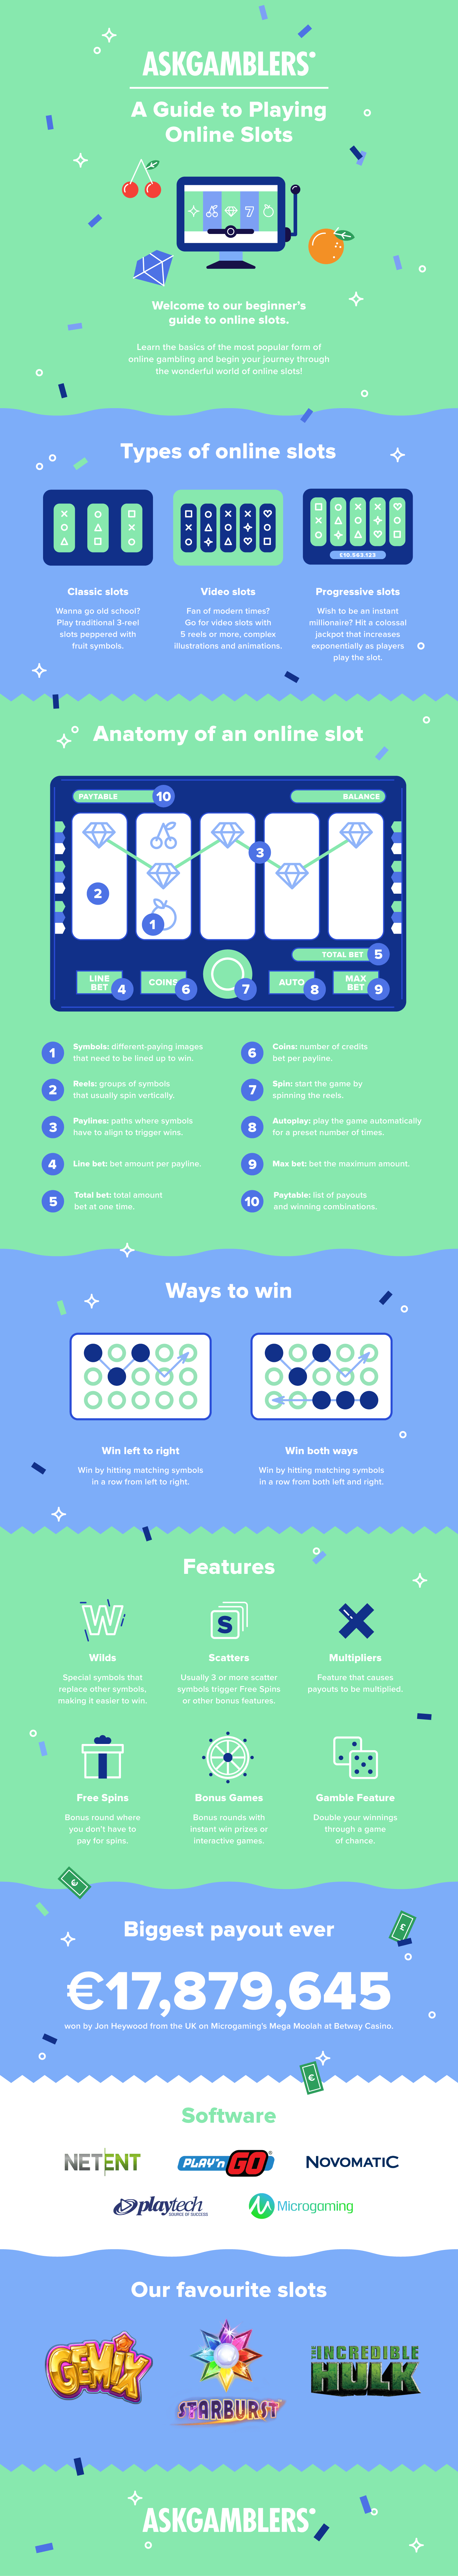 Guide to Playing Slots at Online Casinos